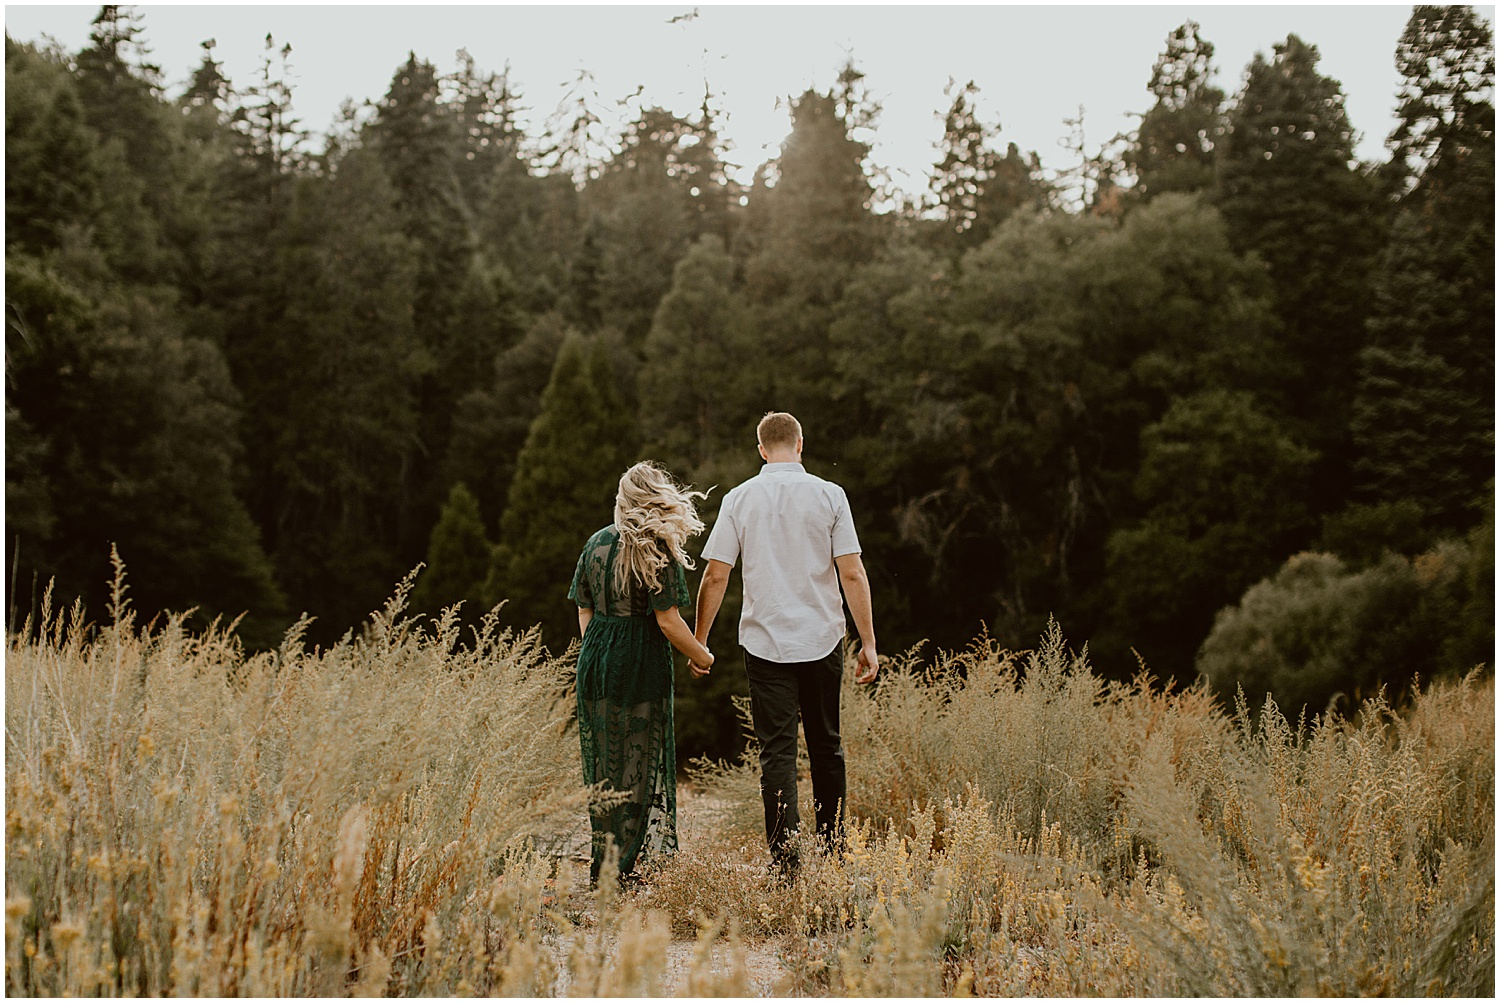 Palomar-Mountain-Engagement-D+M-Diana-Lake-Photography-91.jpg